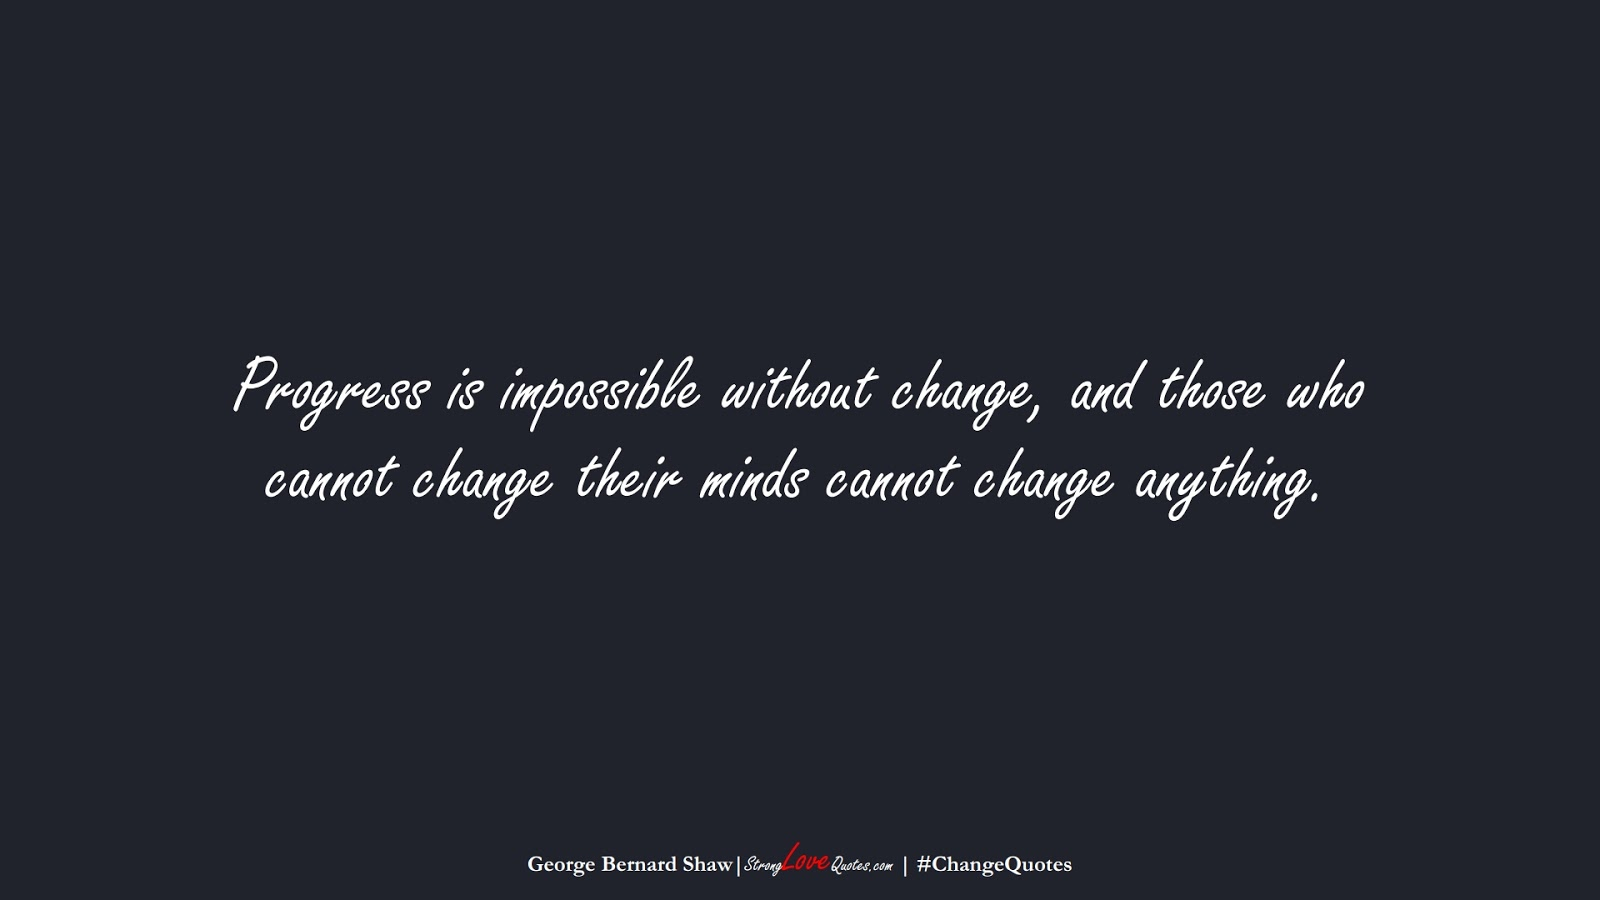 Progress is impossible without change, and those who cannot change their minds cannot change anything. (George Bernard Shaw);  #ChangeQuotes